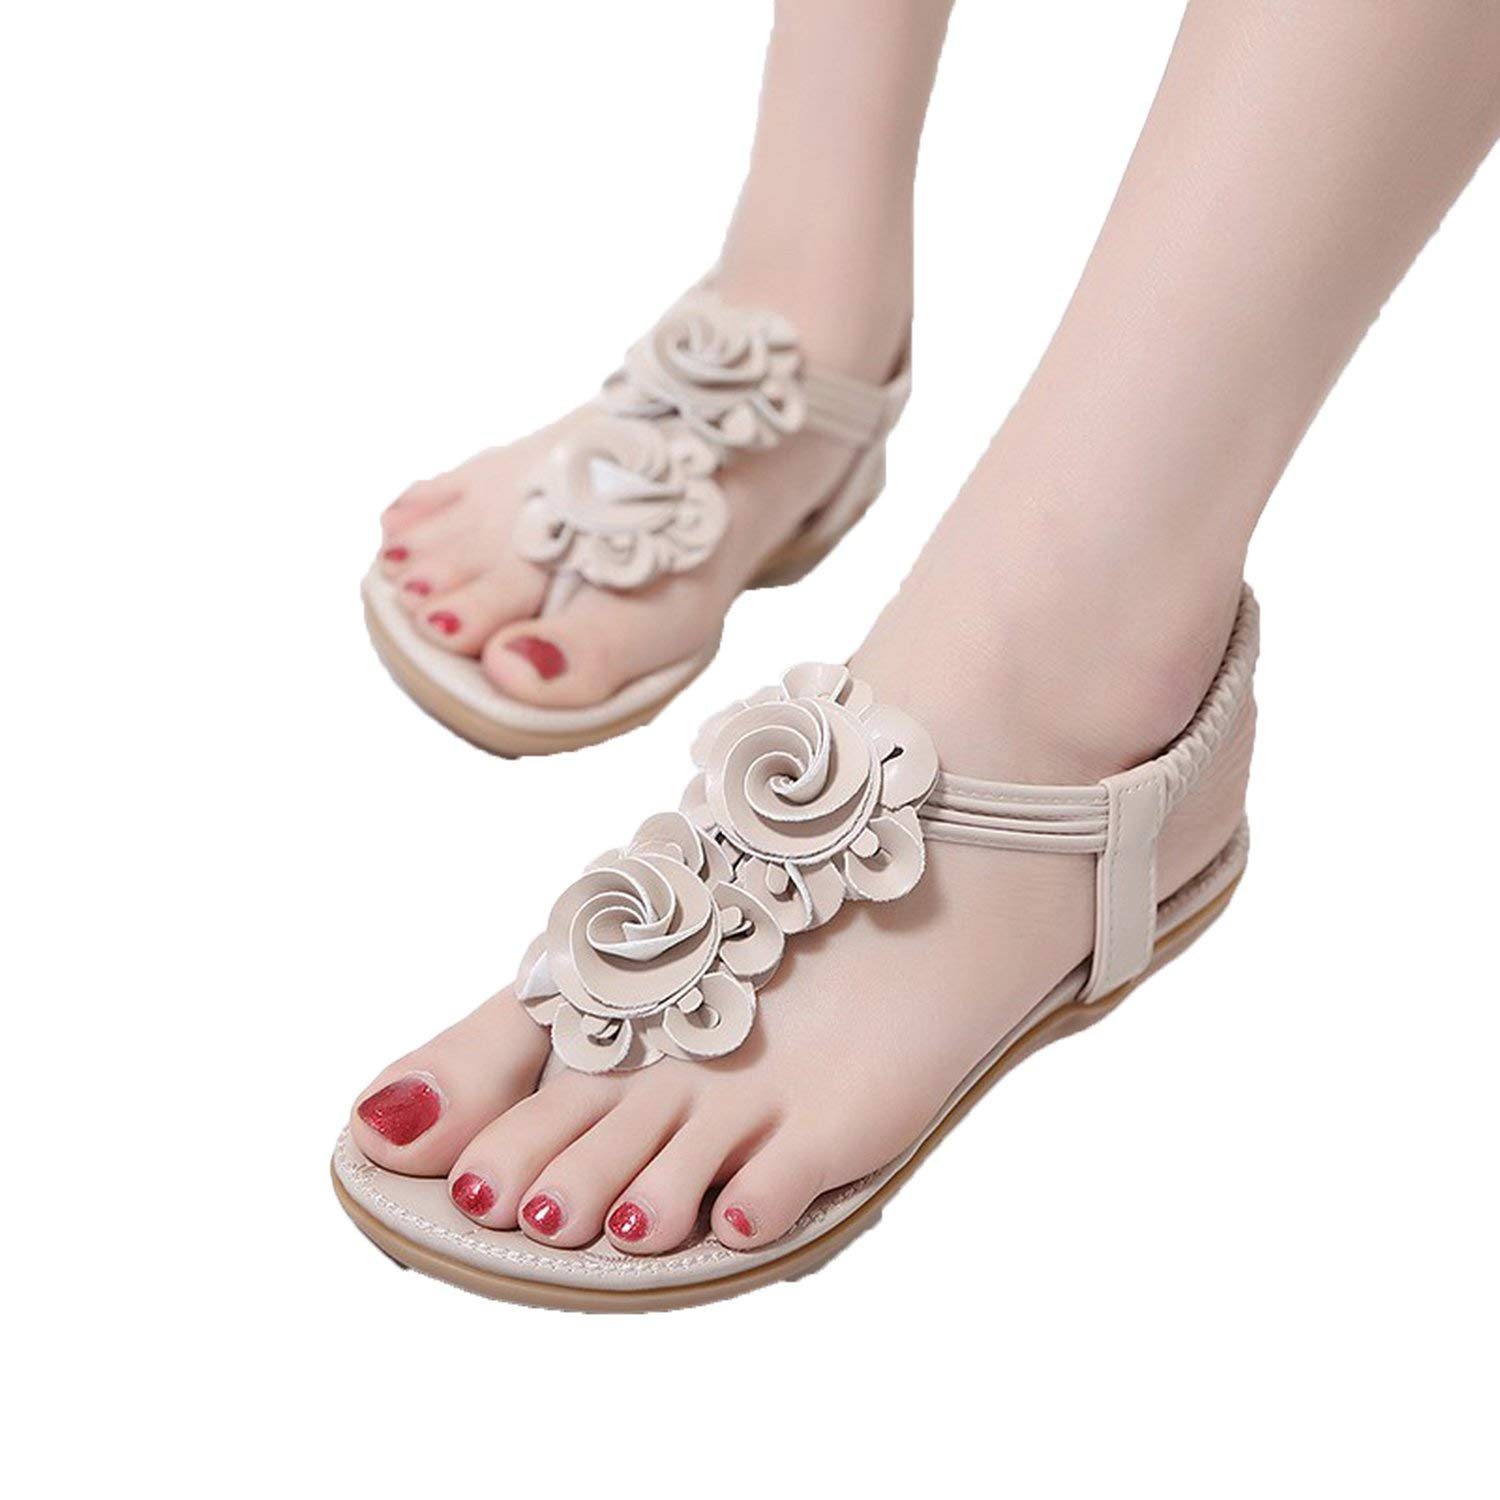 0a8a9ab367f39 Romantic moments Women Sandals Summer Casual Bohemia Flat Sandals Flower  Flip Flop Sweet Beach Size 35